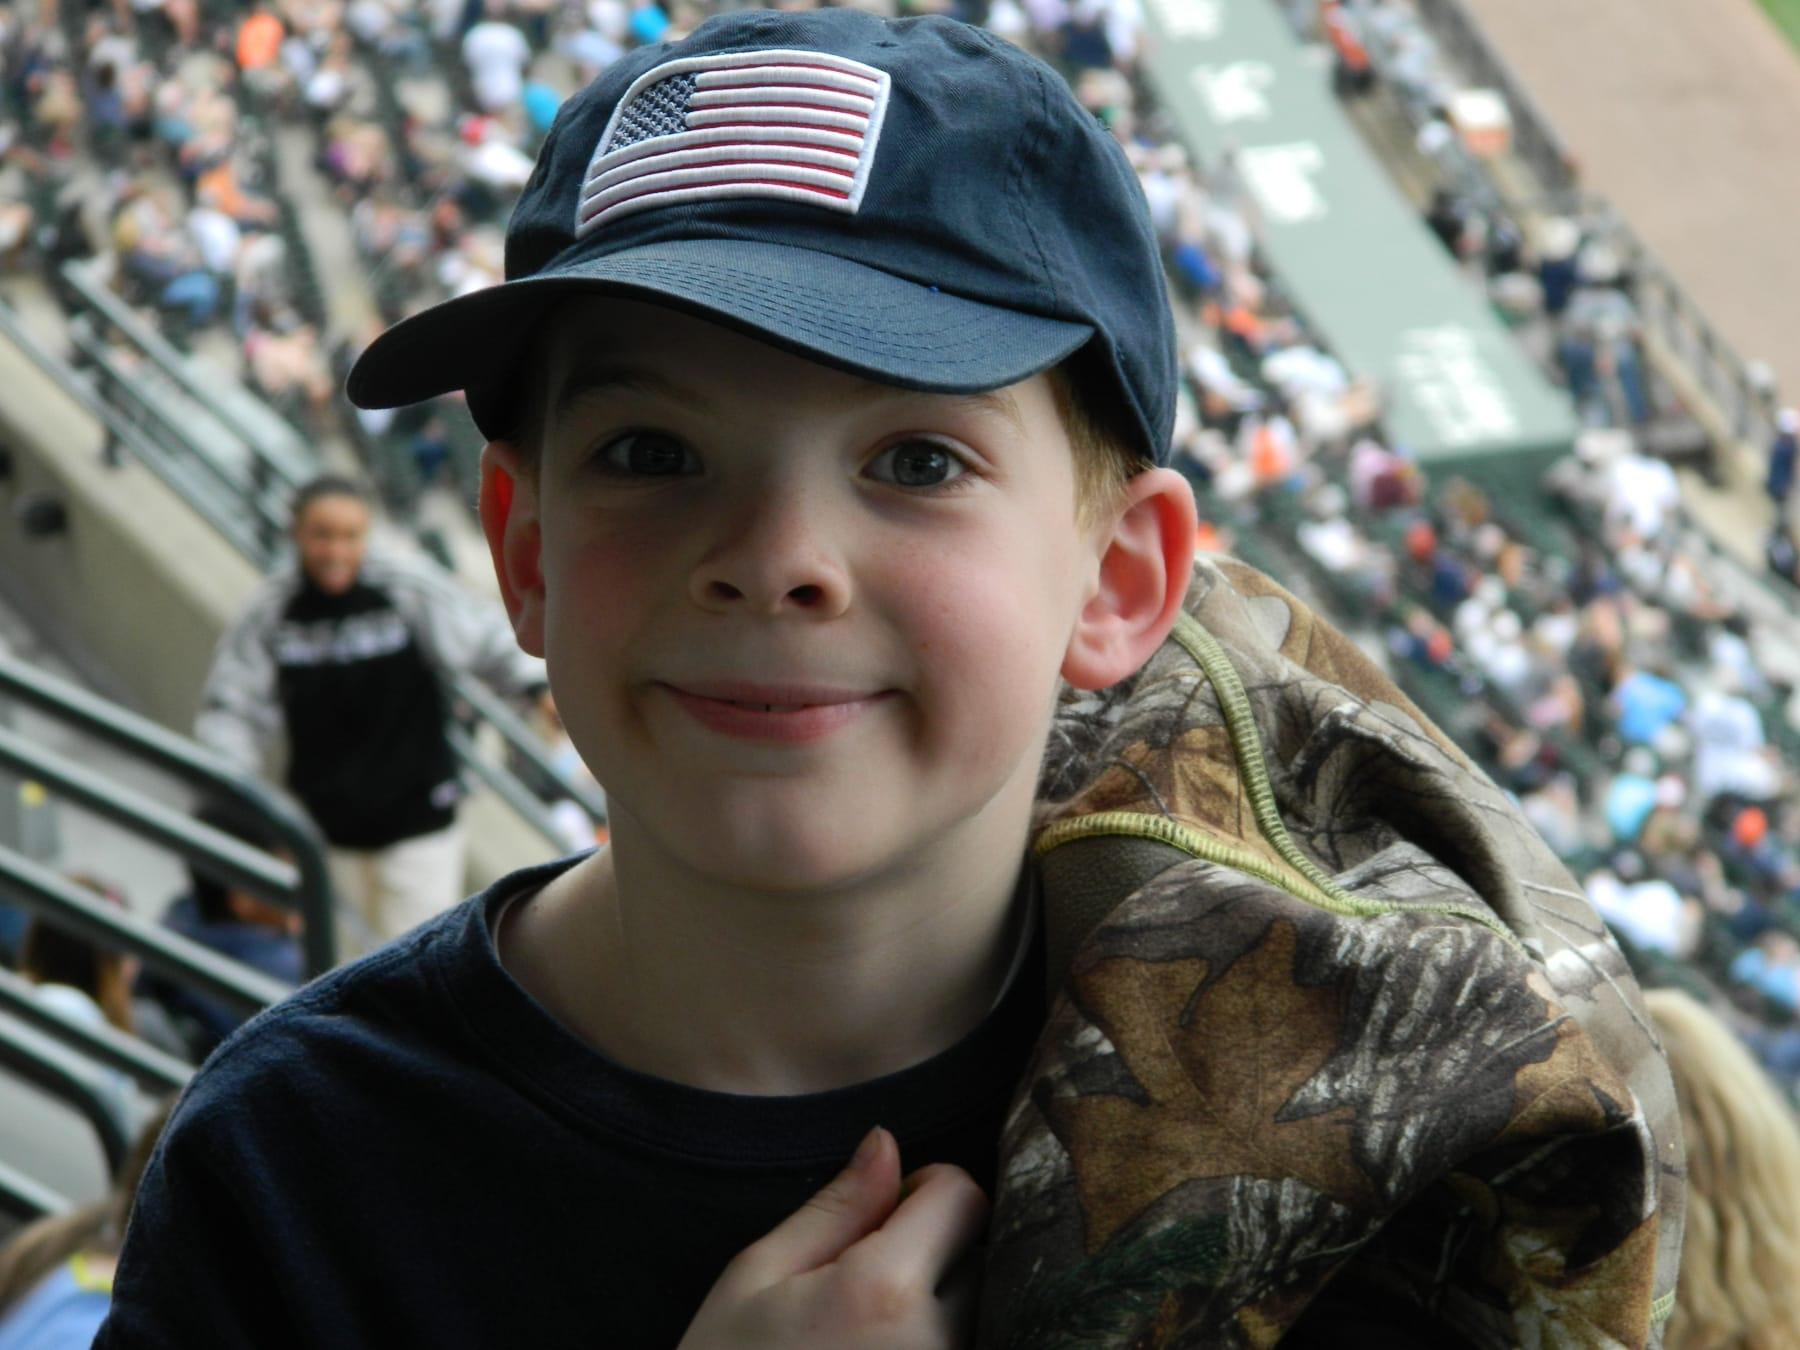 Fairhaven Baptist Academy White Sox Game 2015 (6 of 8)